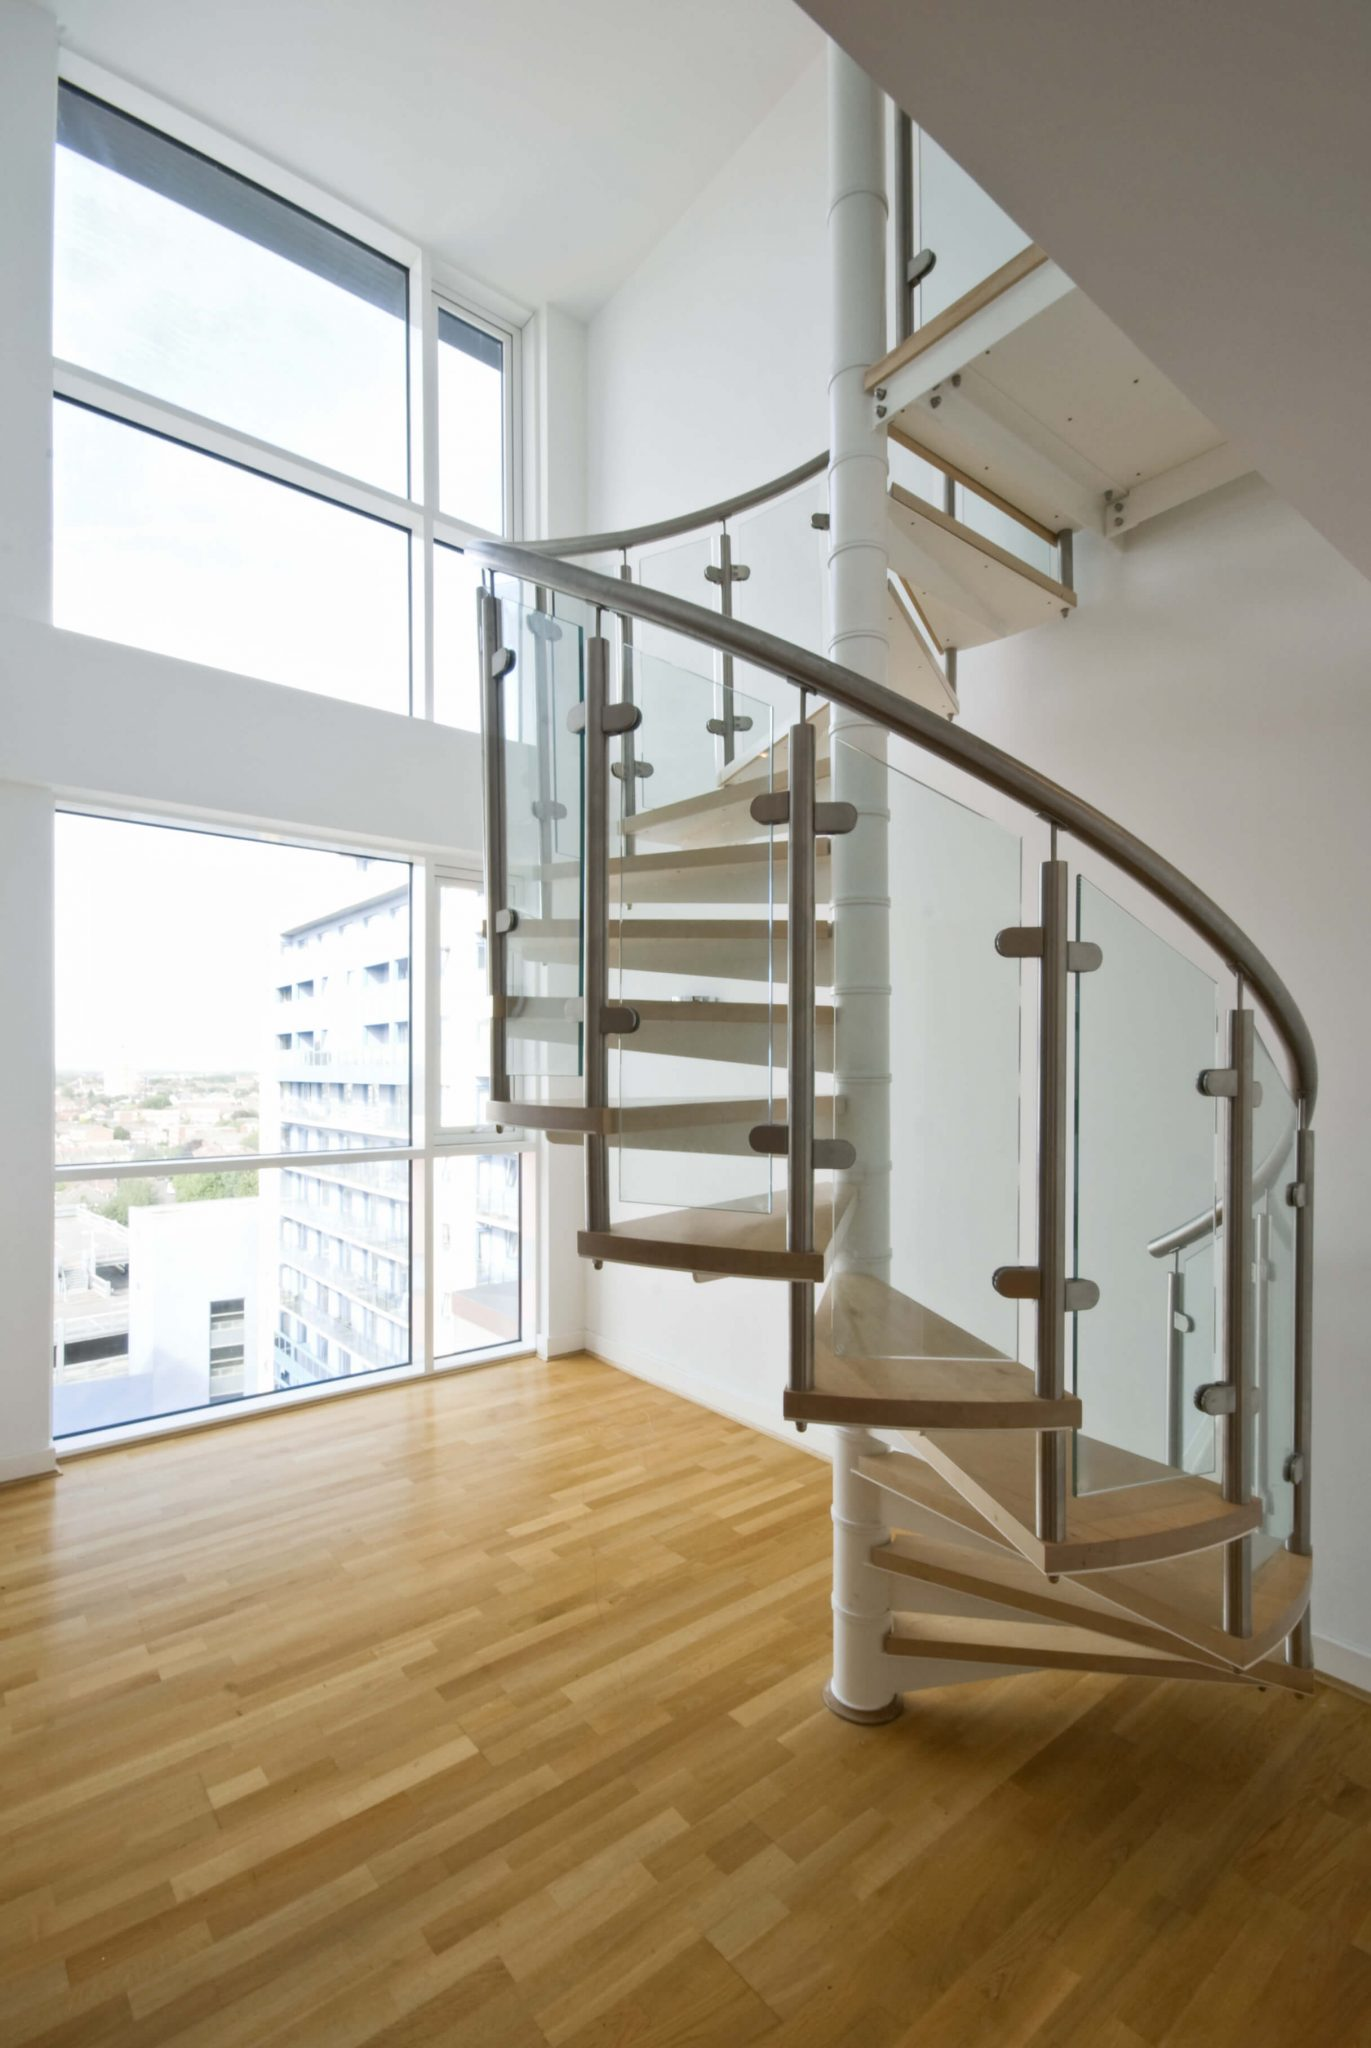 Spiral staircase with wood steps jutting from central white steel pole.  Baluster made up of steel handrail and glass.